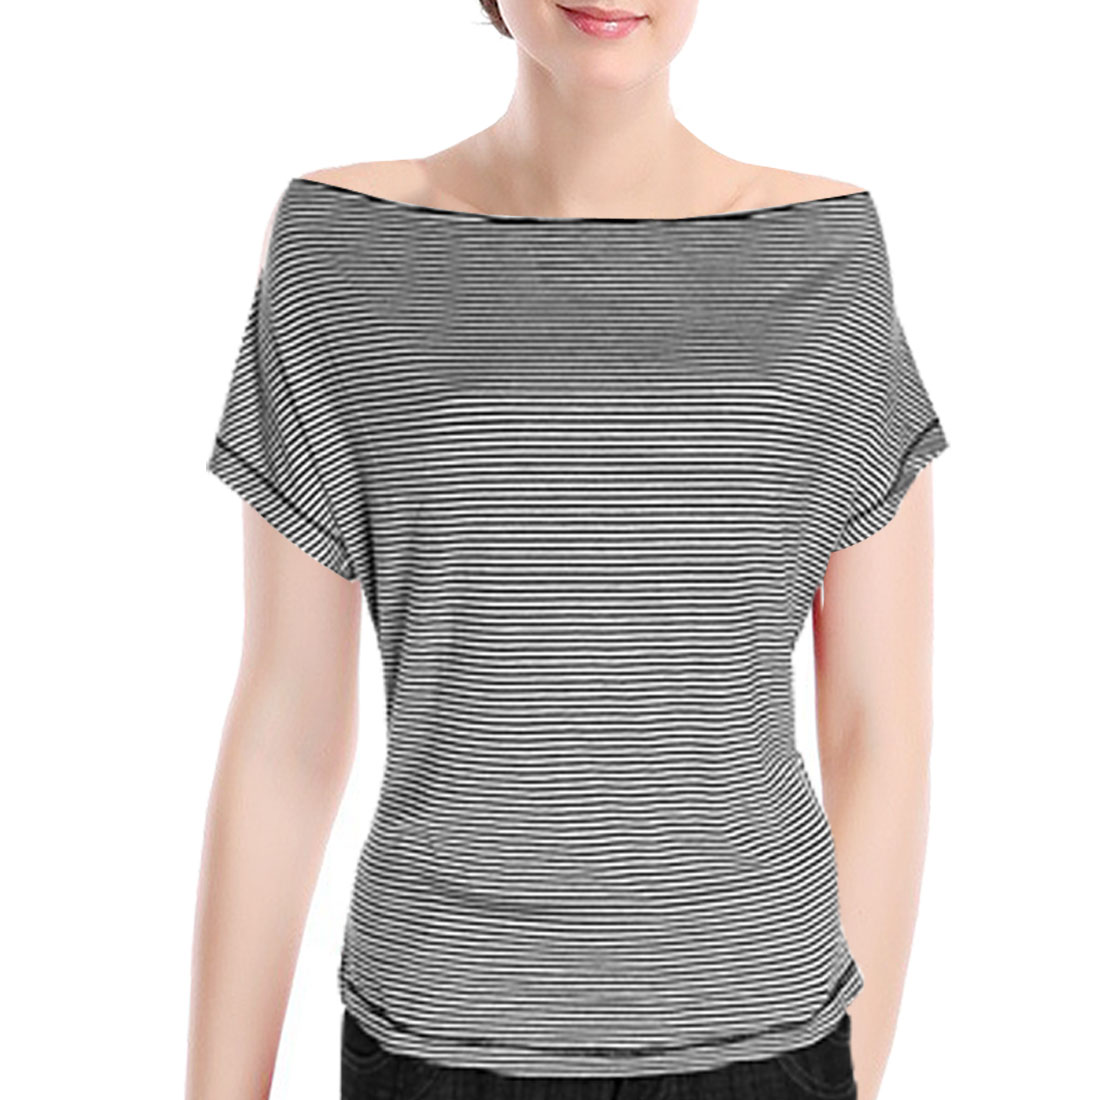 Ladies Striped Boat Neck Top Batwing T-Shirt L